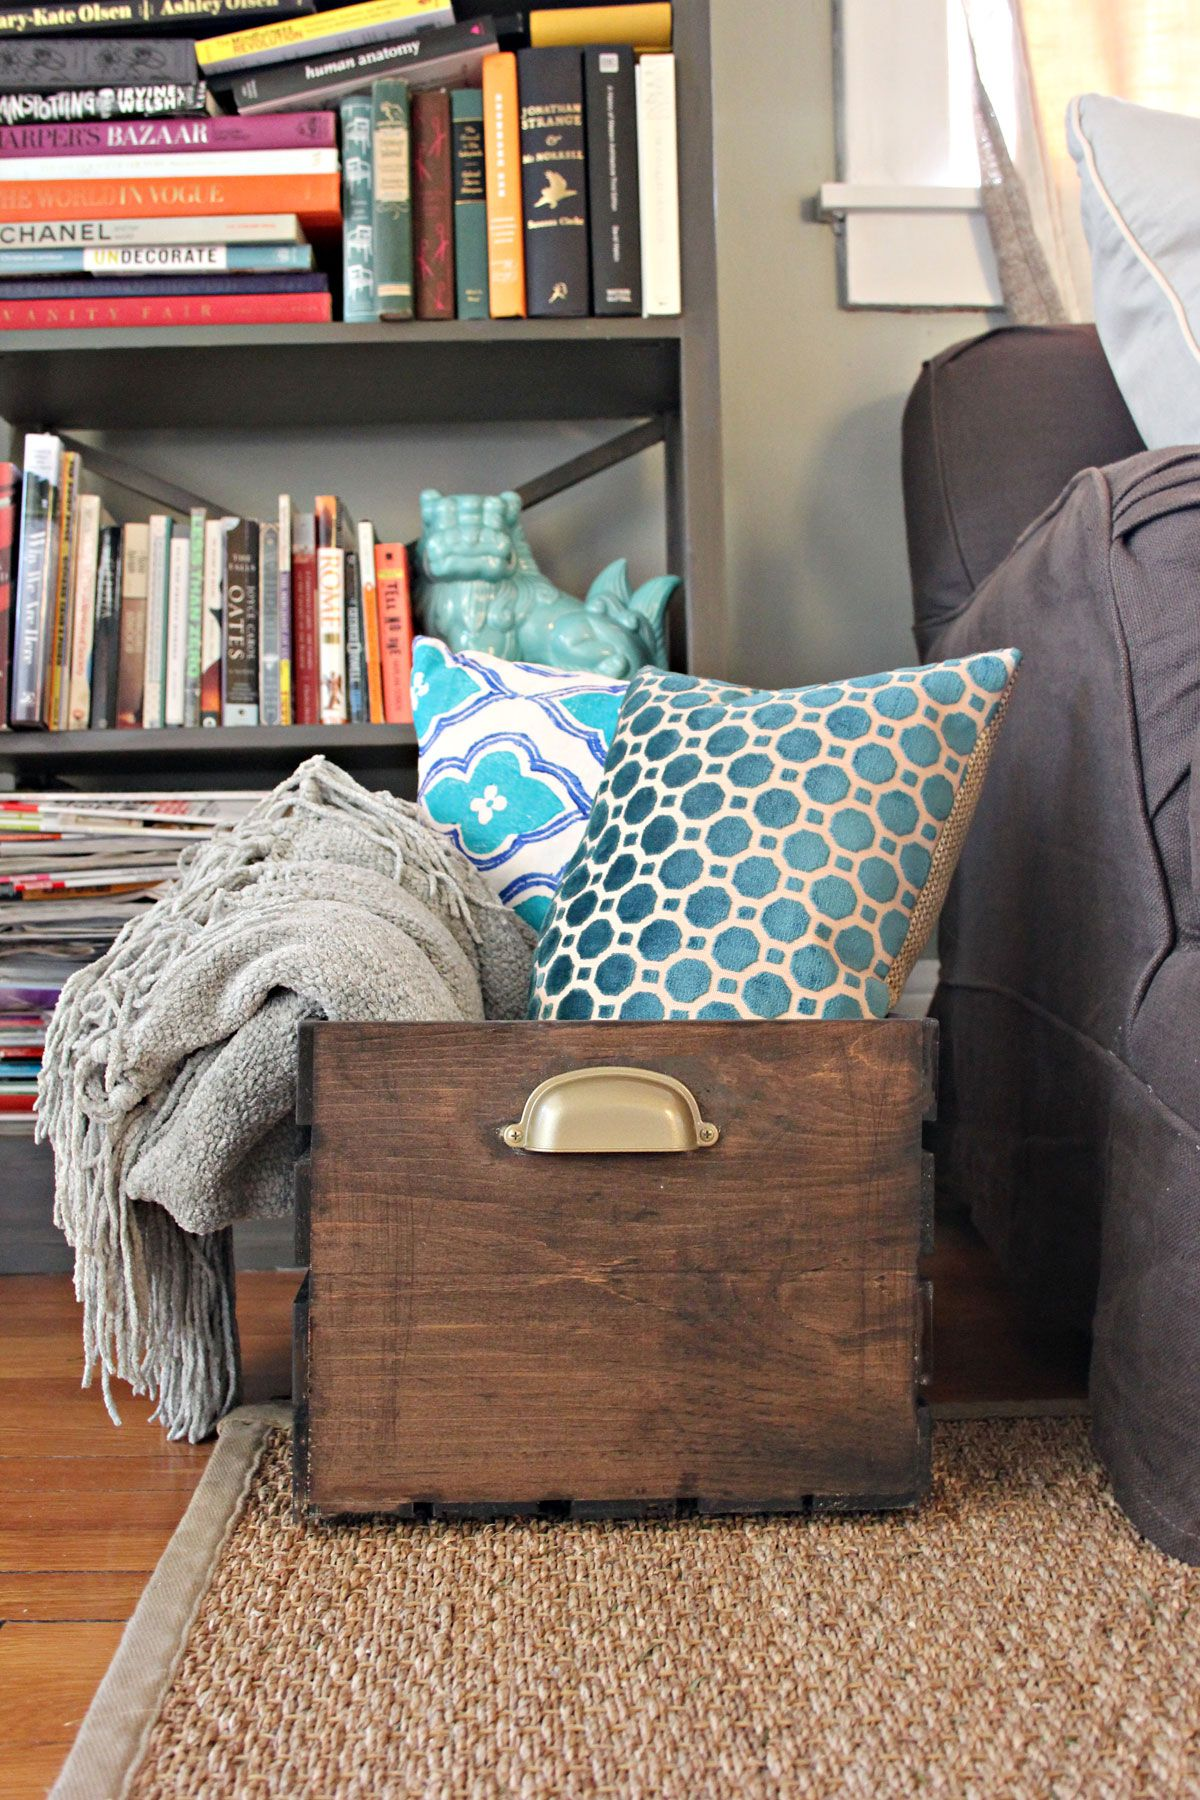 DIY Wooden Storage Crate & DIY Wooden Storage Crate | Wooden crates Crates and Blanket pillowsntoast.com